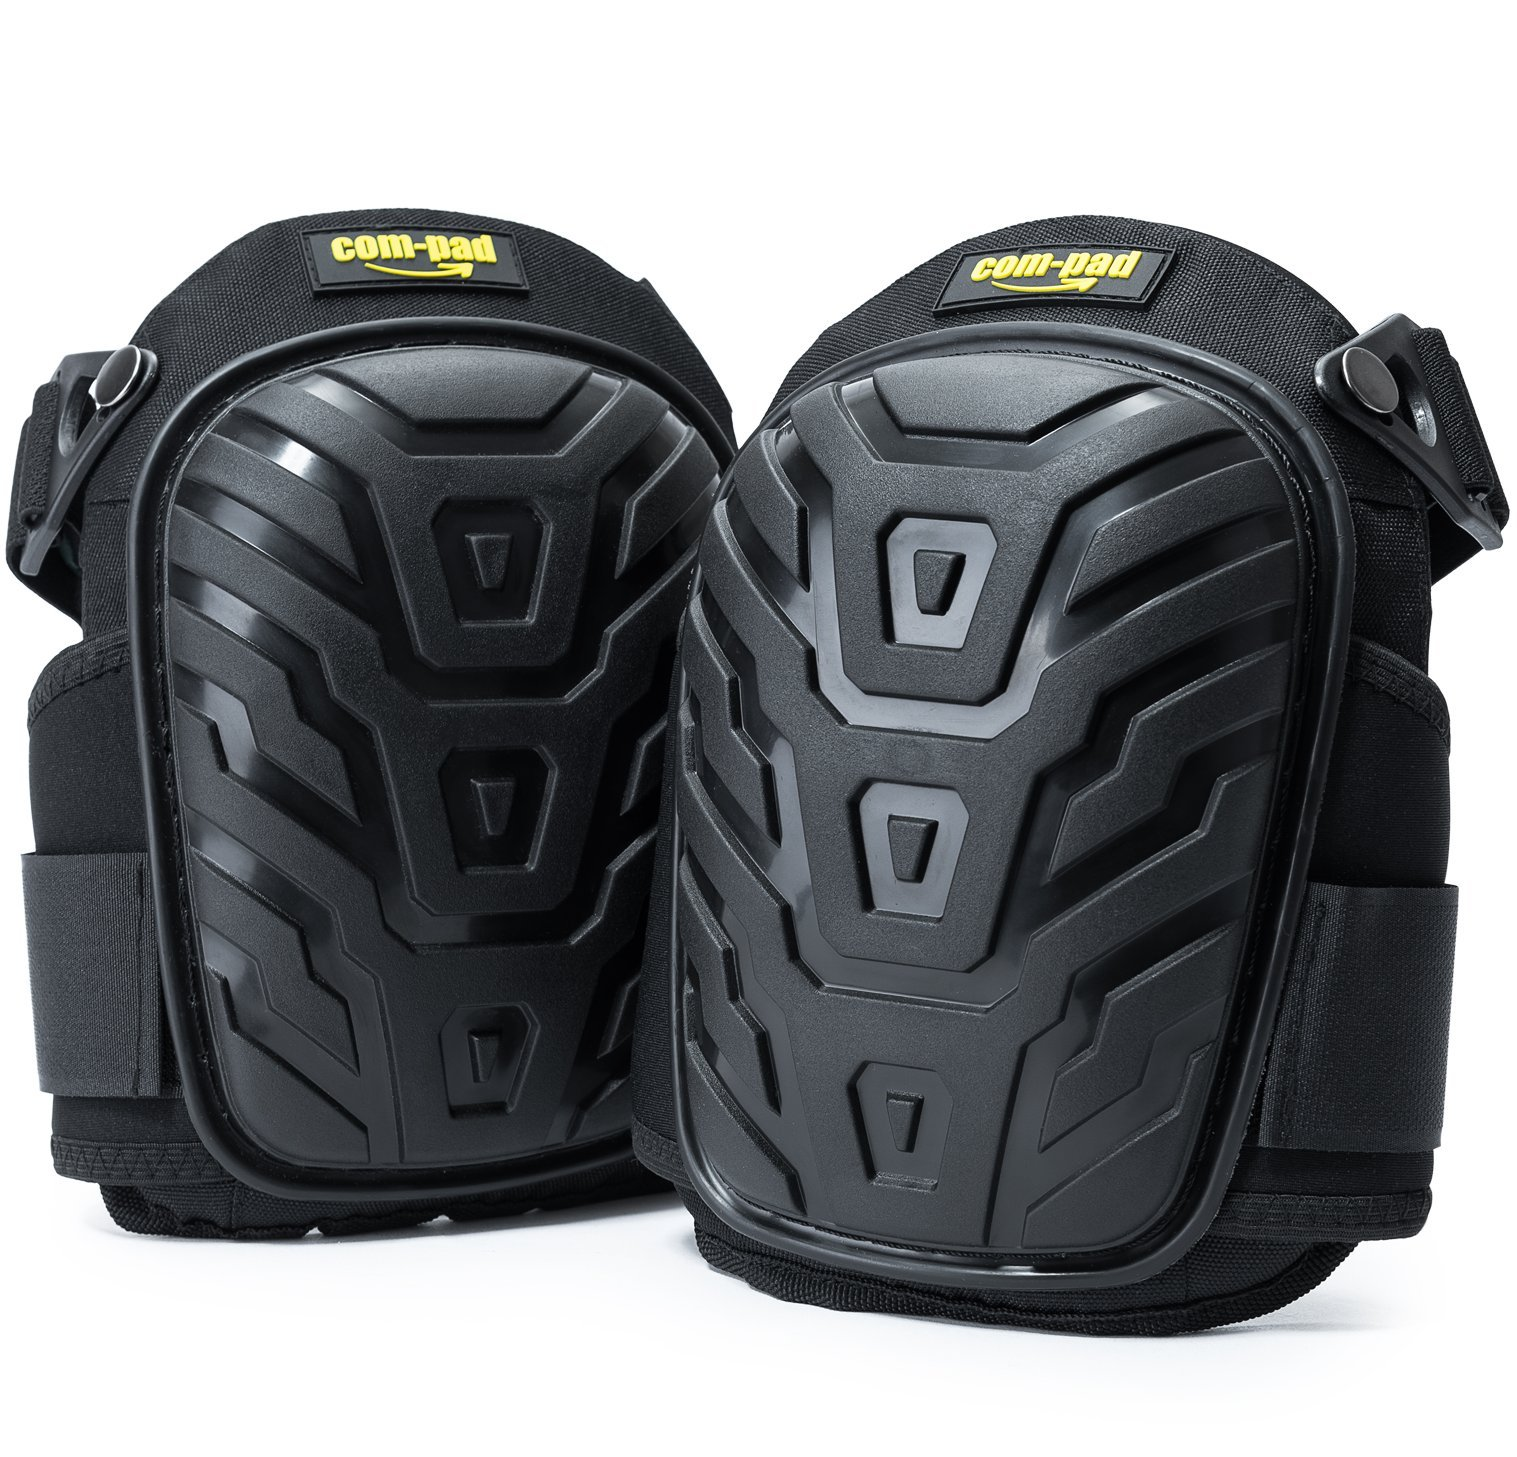 Superior Gel Knee Pads For Work - Foam Padding Gardening/Construction Knee Pads - Extremly Comfortable Kneepads To Save Your Knees